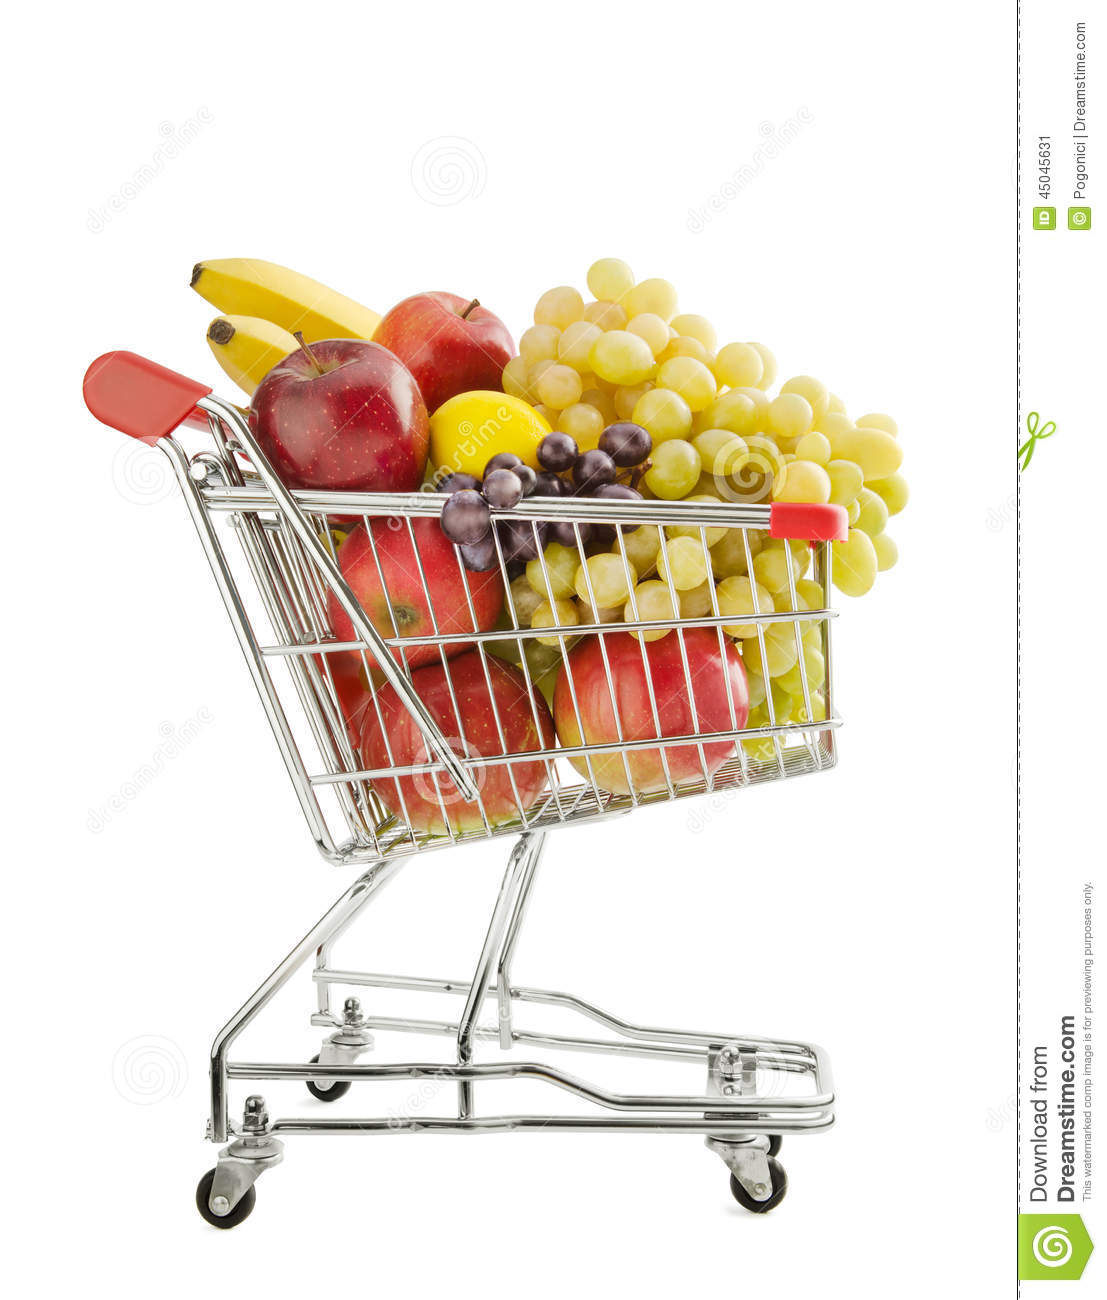 Healthy Food Shopping Stock Photo